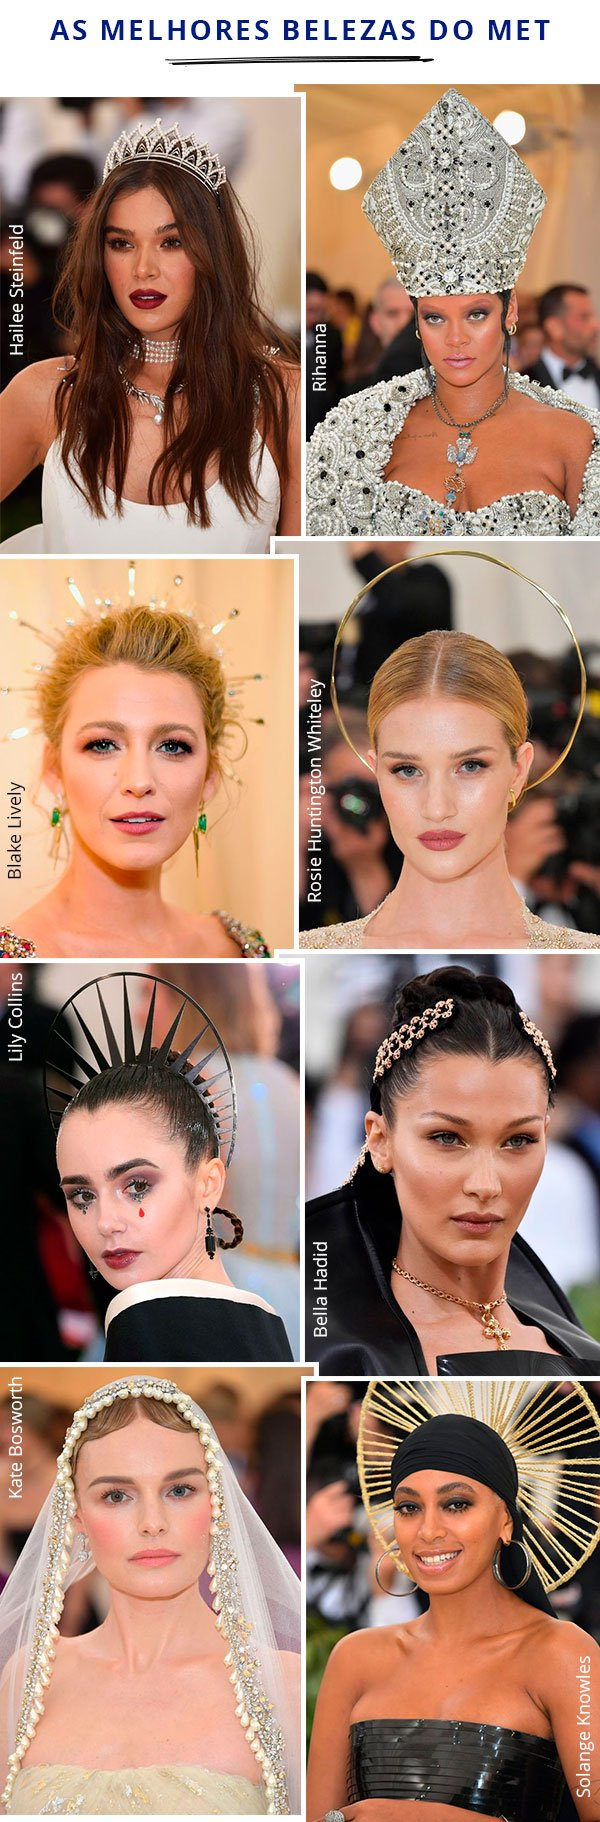 met gala - 2018 - beleza - celebs - make up